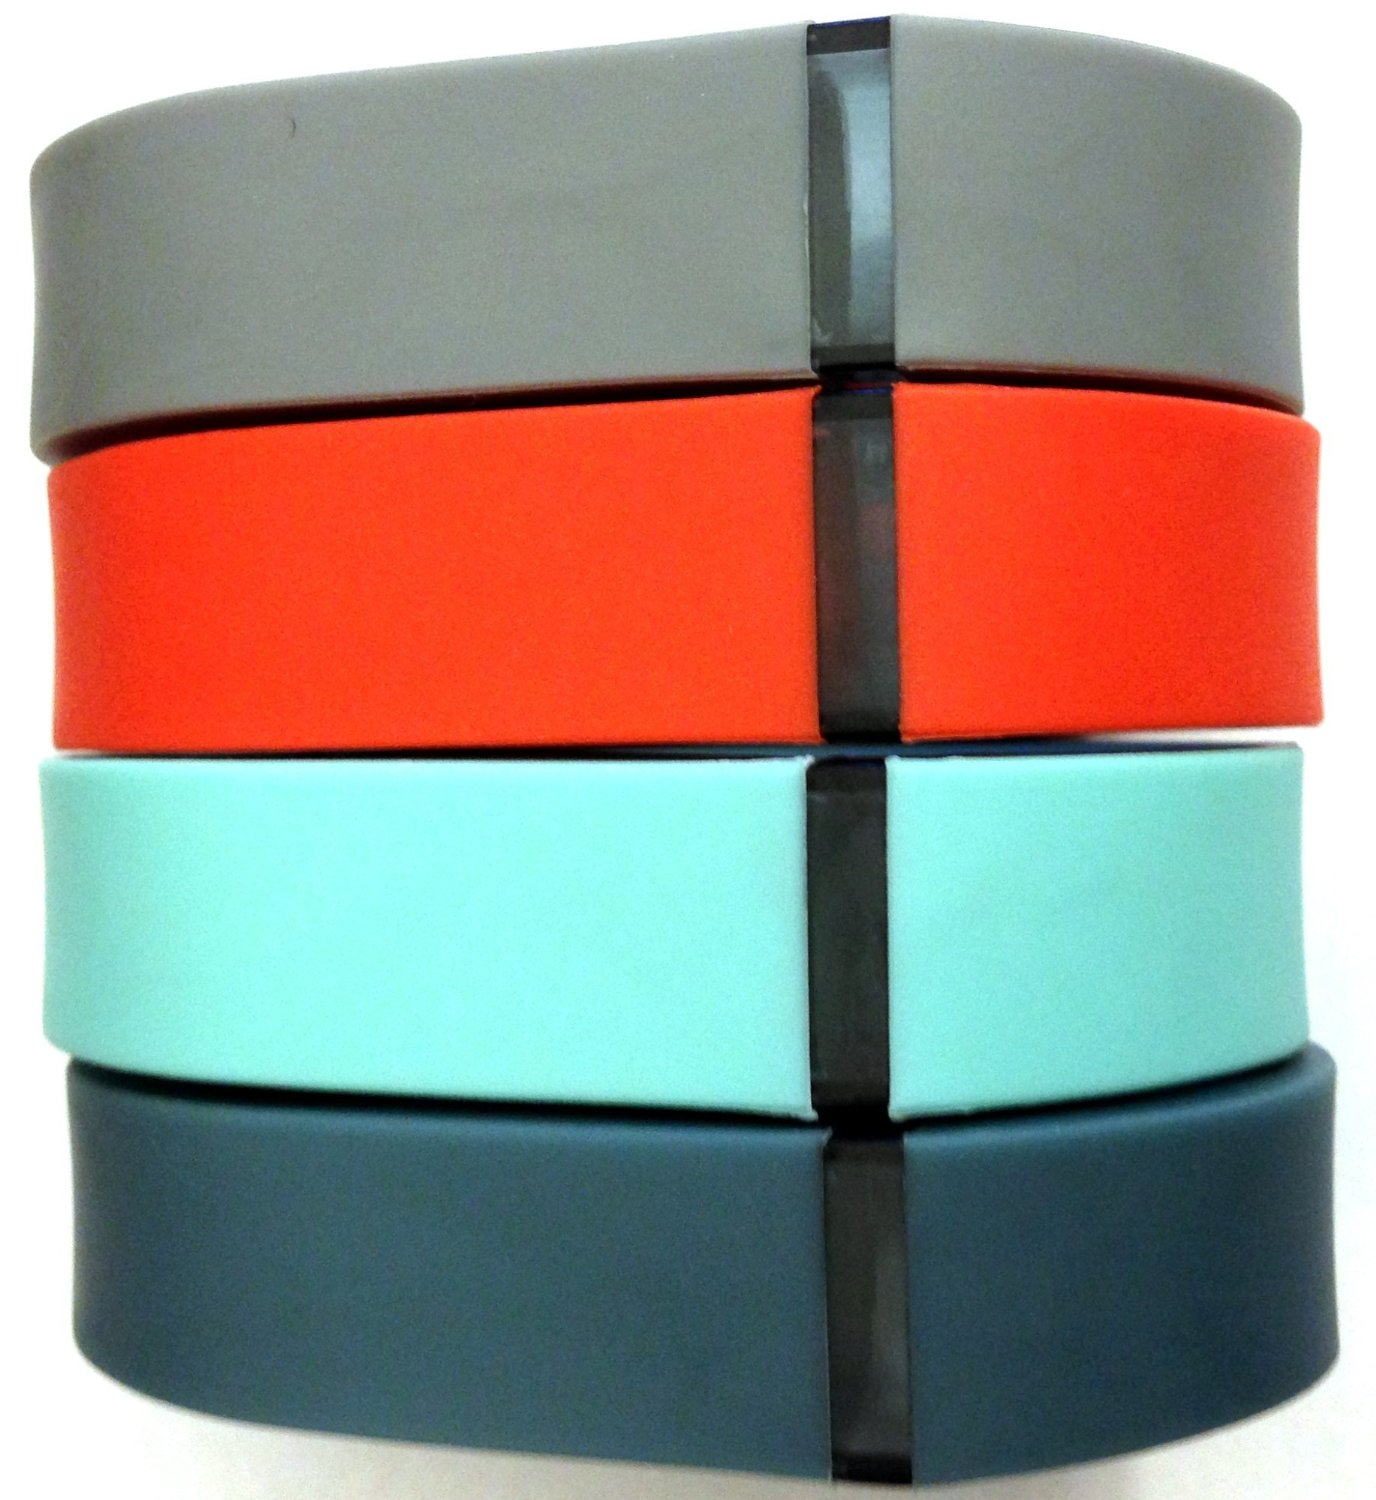 Set 4 Colors Small S 1pc Grey 1pc Teal (Blue/Green) 1pc Slate (Blue/Grey) 1pc Red (Tangerine) Replacement Bands With Clasp for Fitbit FLEX Only /No tracker/ Wireless Activity Bracelet Sport Wristband Fit Bit Flex Bracelet Sport Arm Band Armband